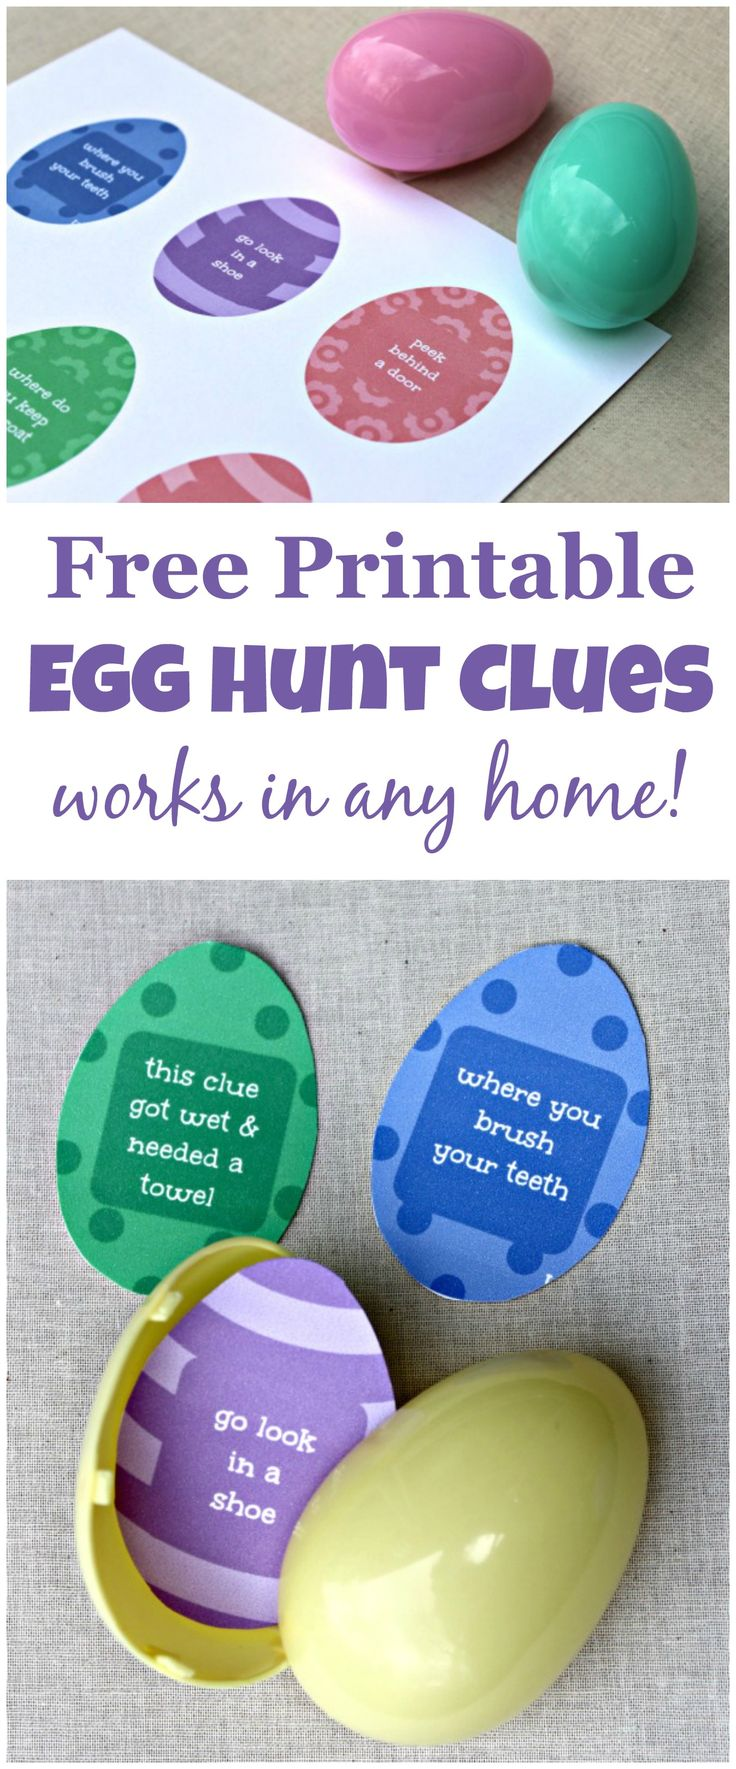 Love this Easter Egg Hunt idea that works in any home!  Free clues to use too.